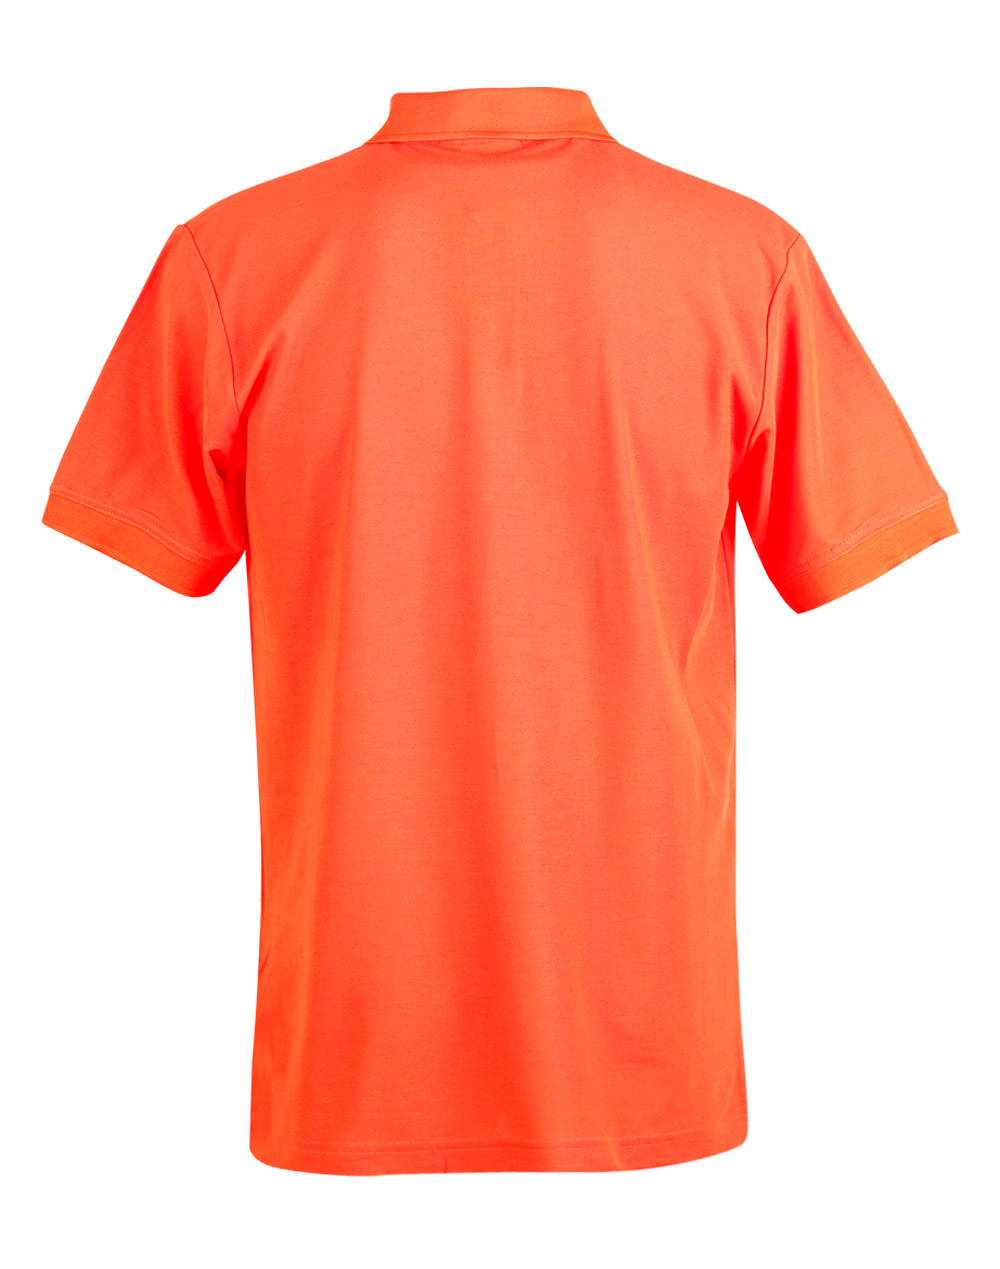 https://s3-ap-southeast-1.amazonaws.com/ws-imgs/POLOSHIRTS/PS63_Orange_Back.jpg